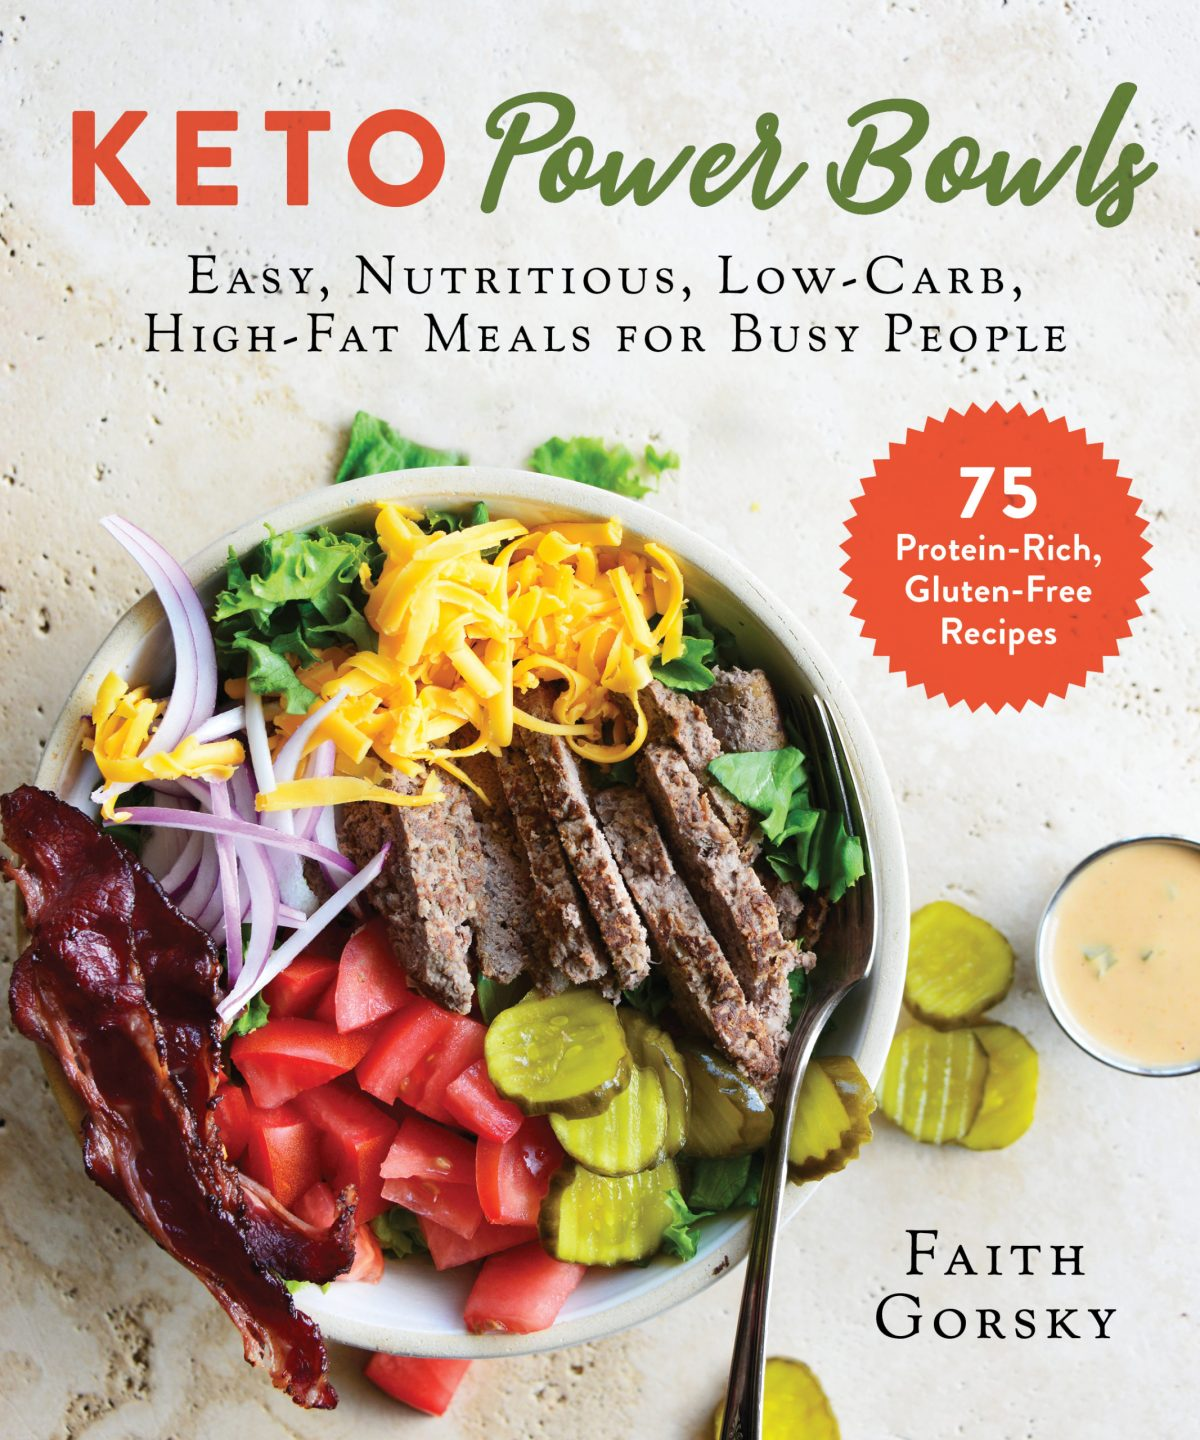 Keto Power Bowls Cookbook Cover